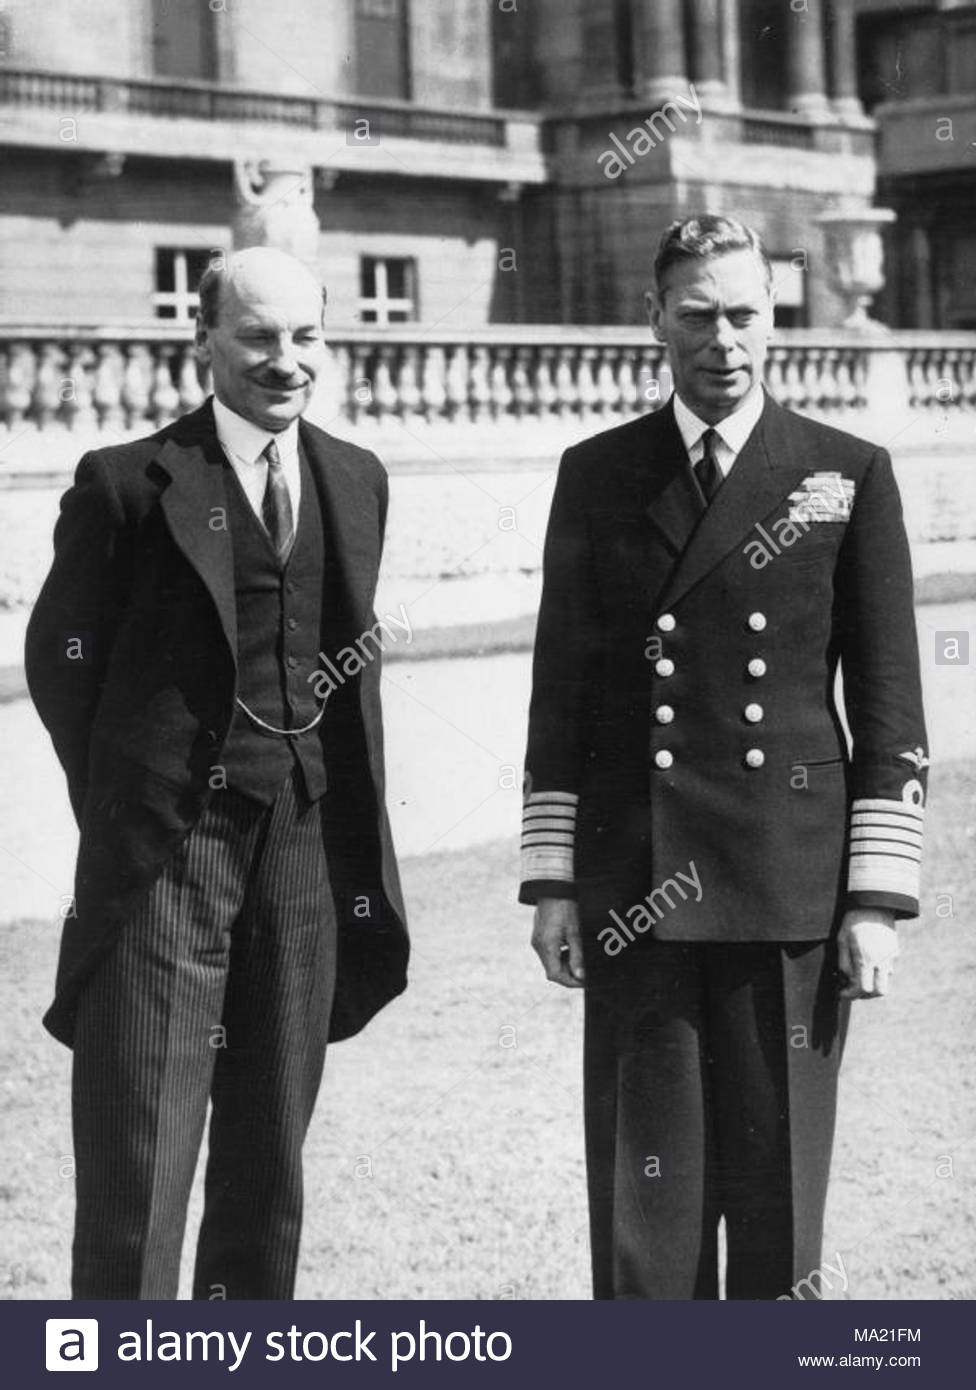 . Clement Attlee meeting with King George VI in the grounds of Buckingham Palace, following the Labour victory in the 1945 general election. - Stock Image